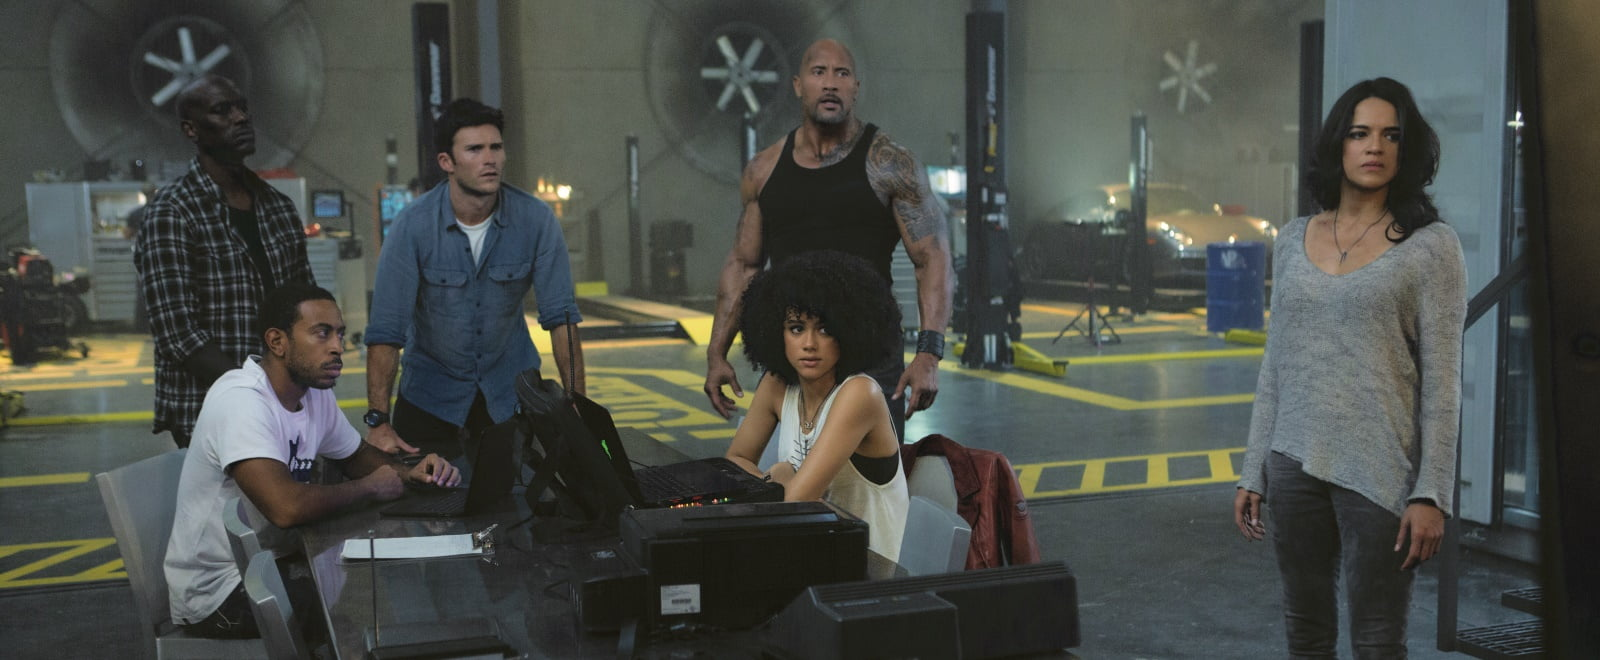 Форсаж 8 / The Fate of the Furious (2017)